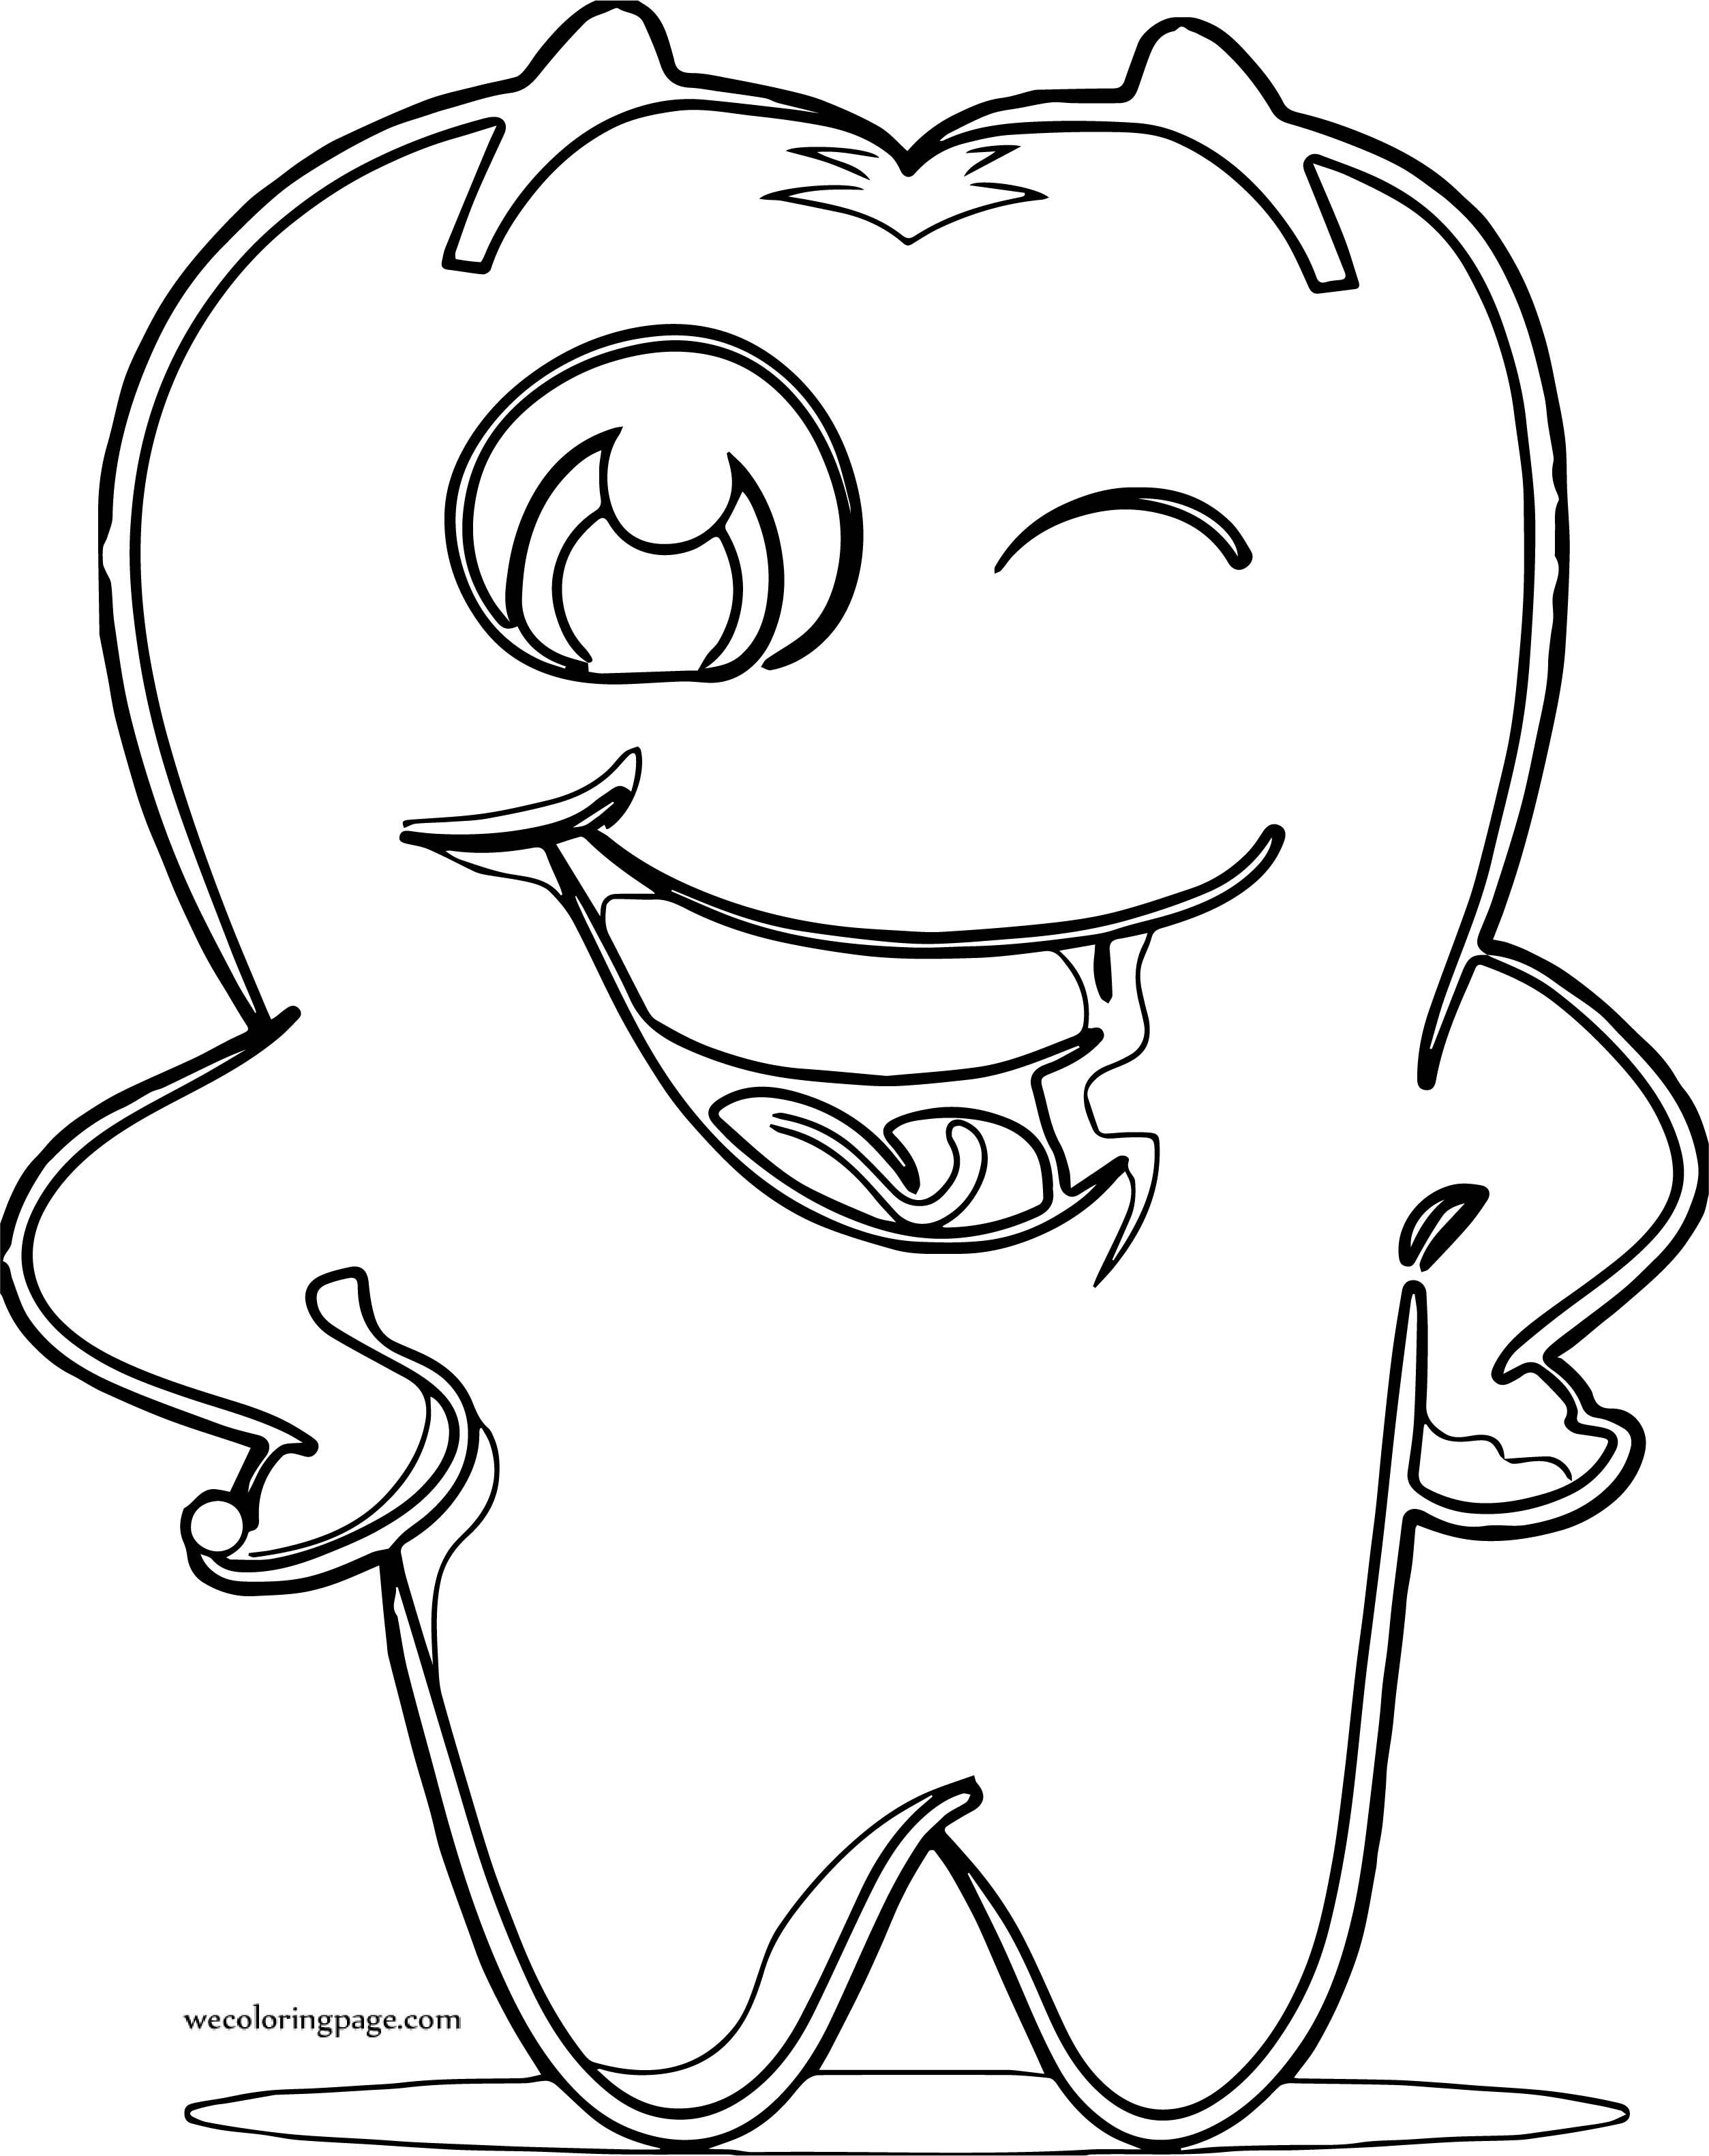 Dental health tooth wink coloring page for Teeth coloring pages